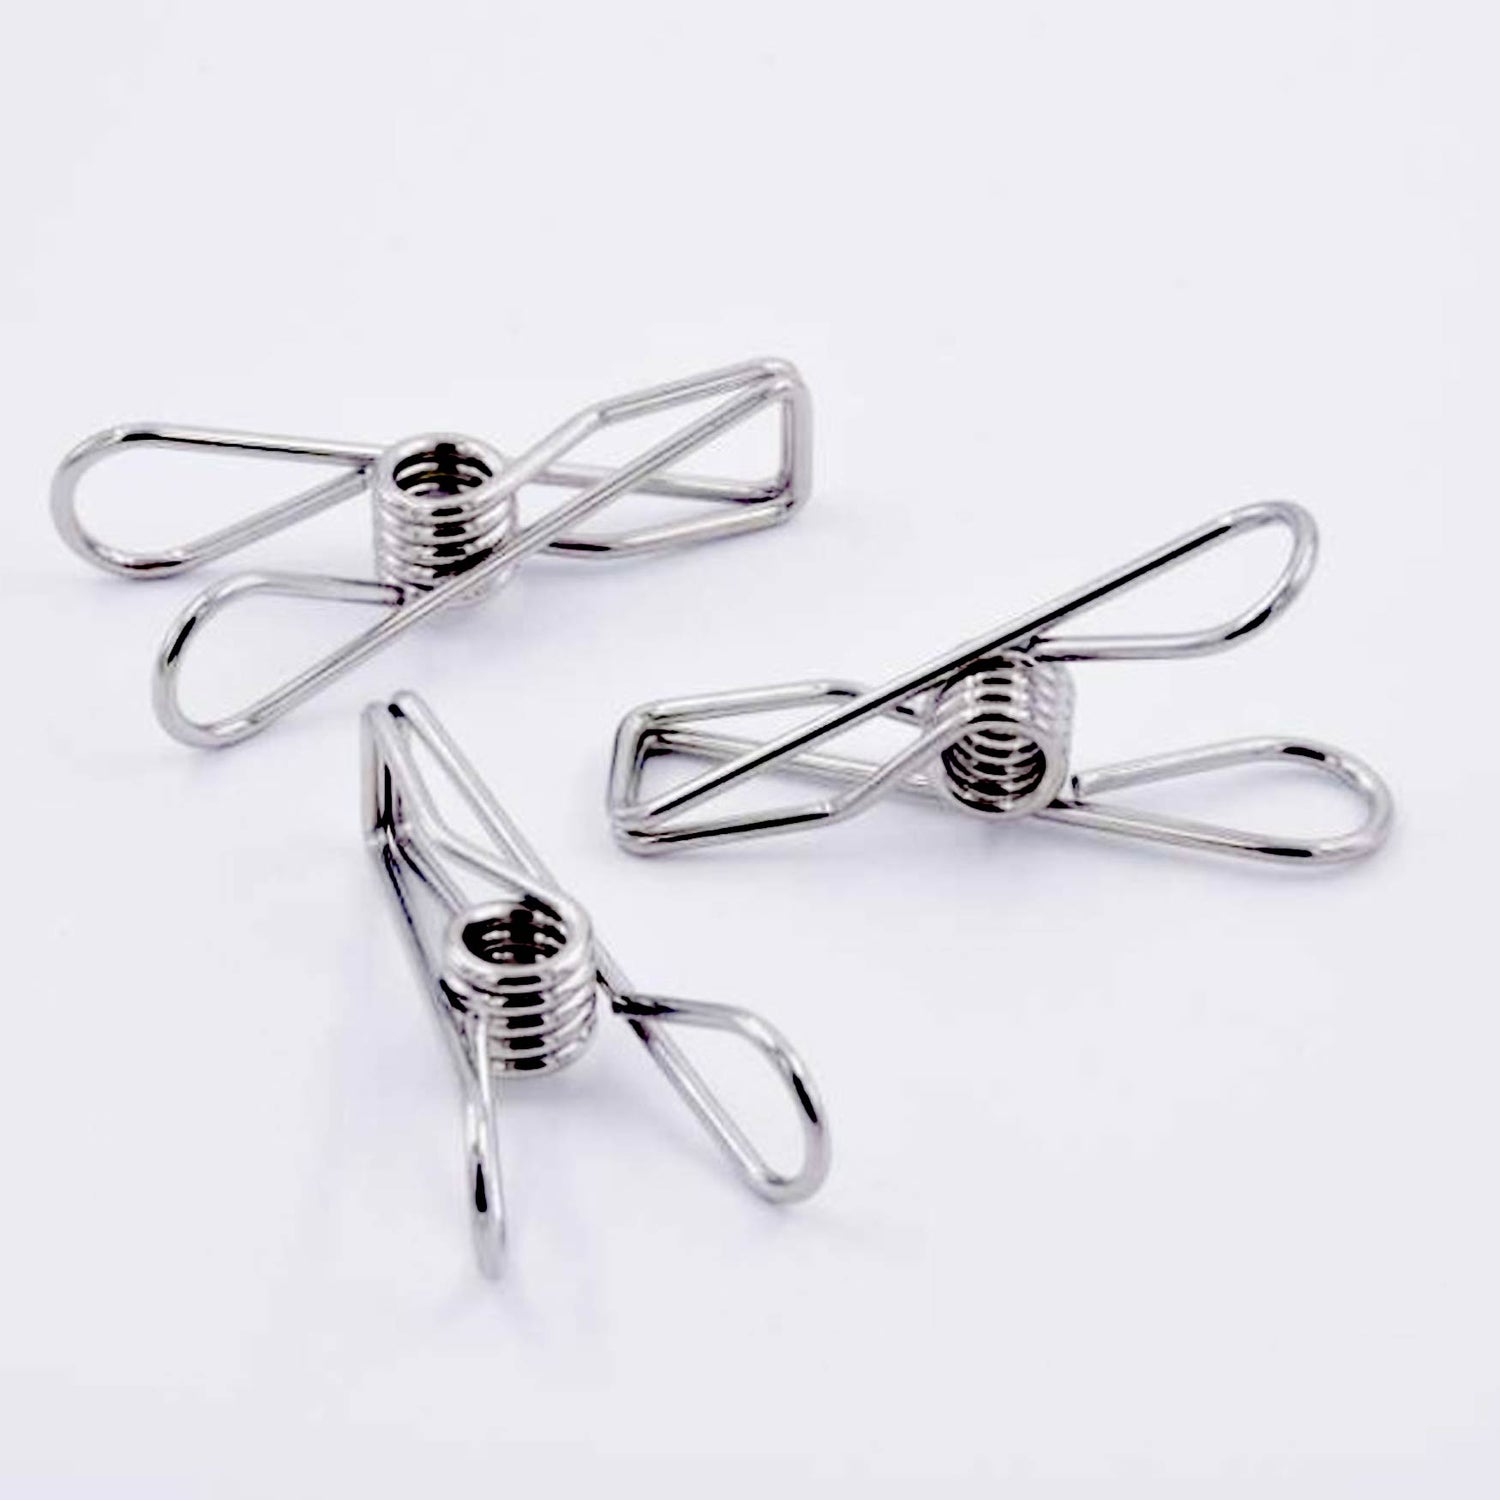 CollectiveGood - Marine Grade Steel Clothes Pegs